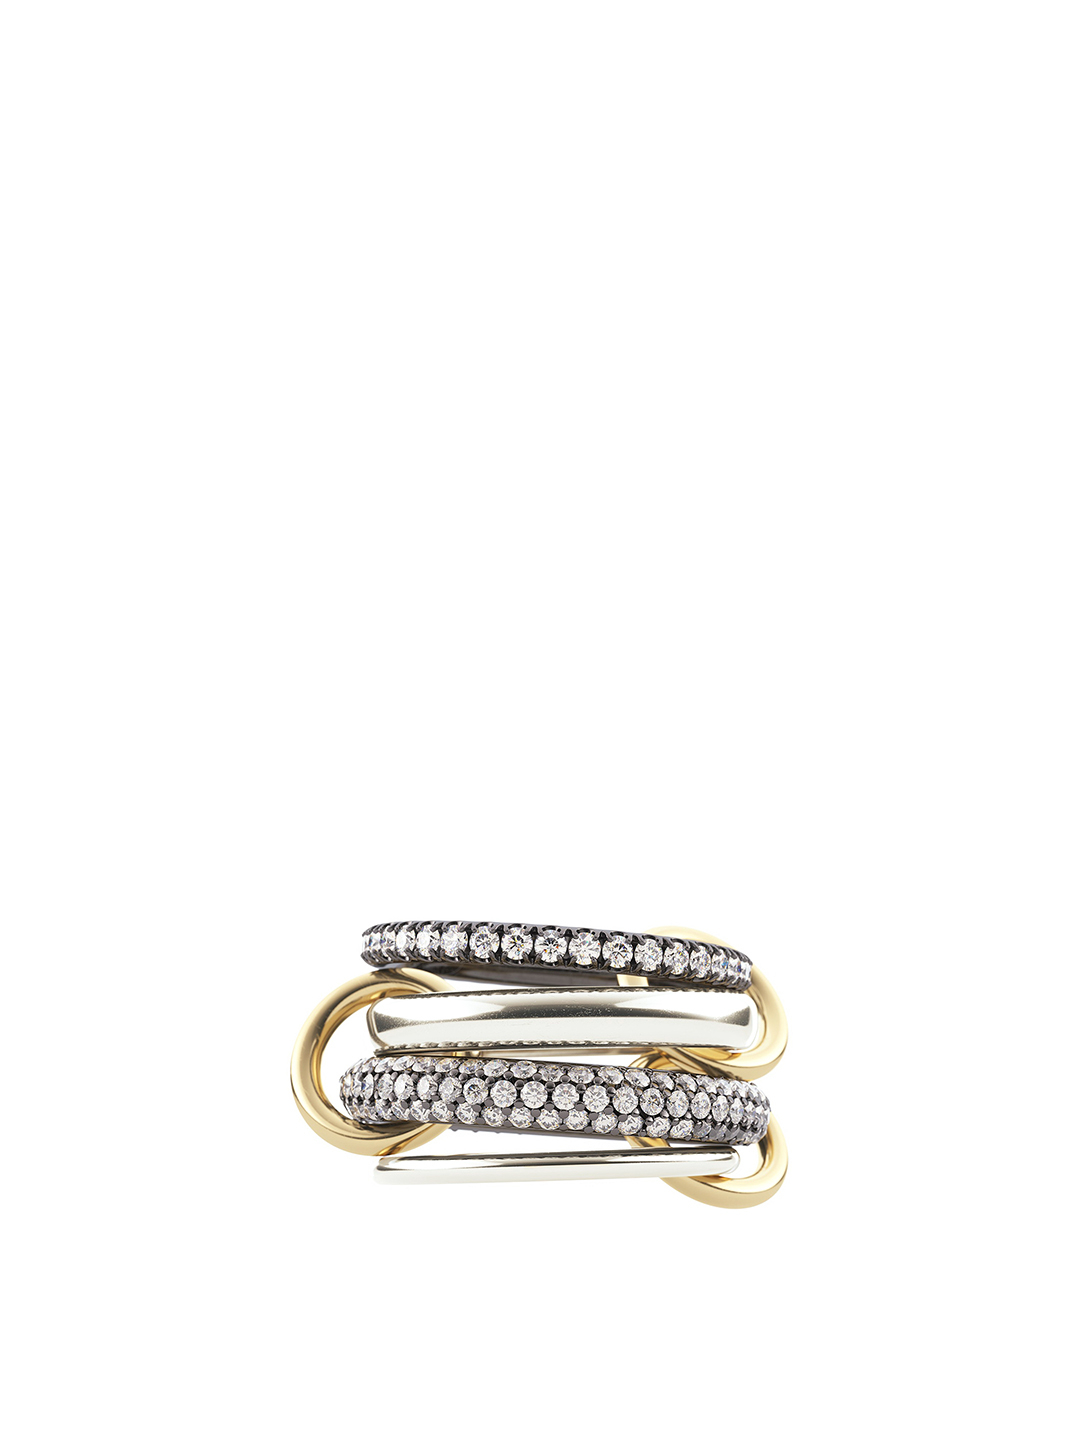 SPINELLI KILCOLLIN Vega SG Sterling Silver And 18K Gold Stacked Ring With Diamonds Women's Multi